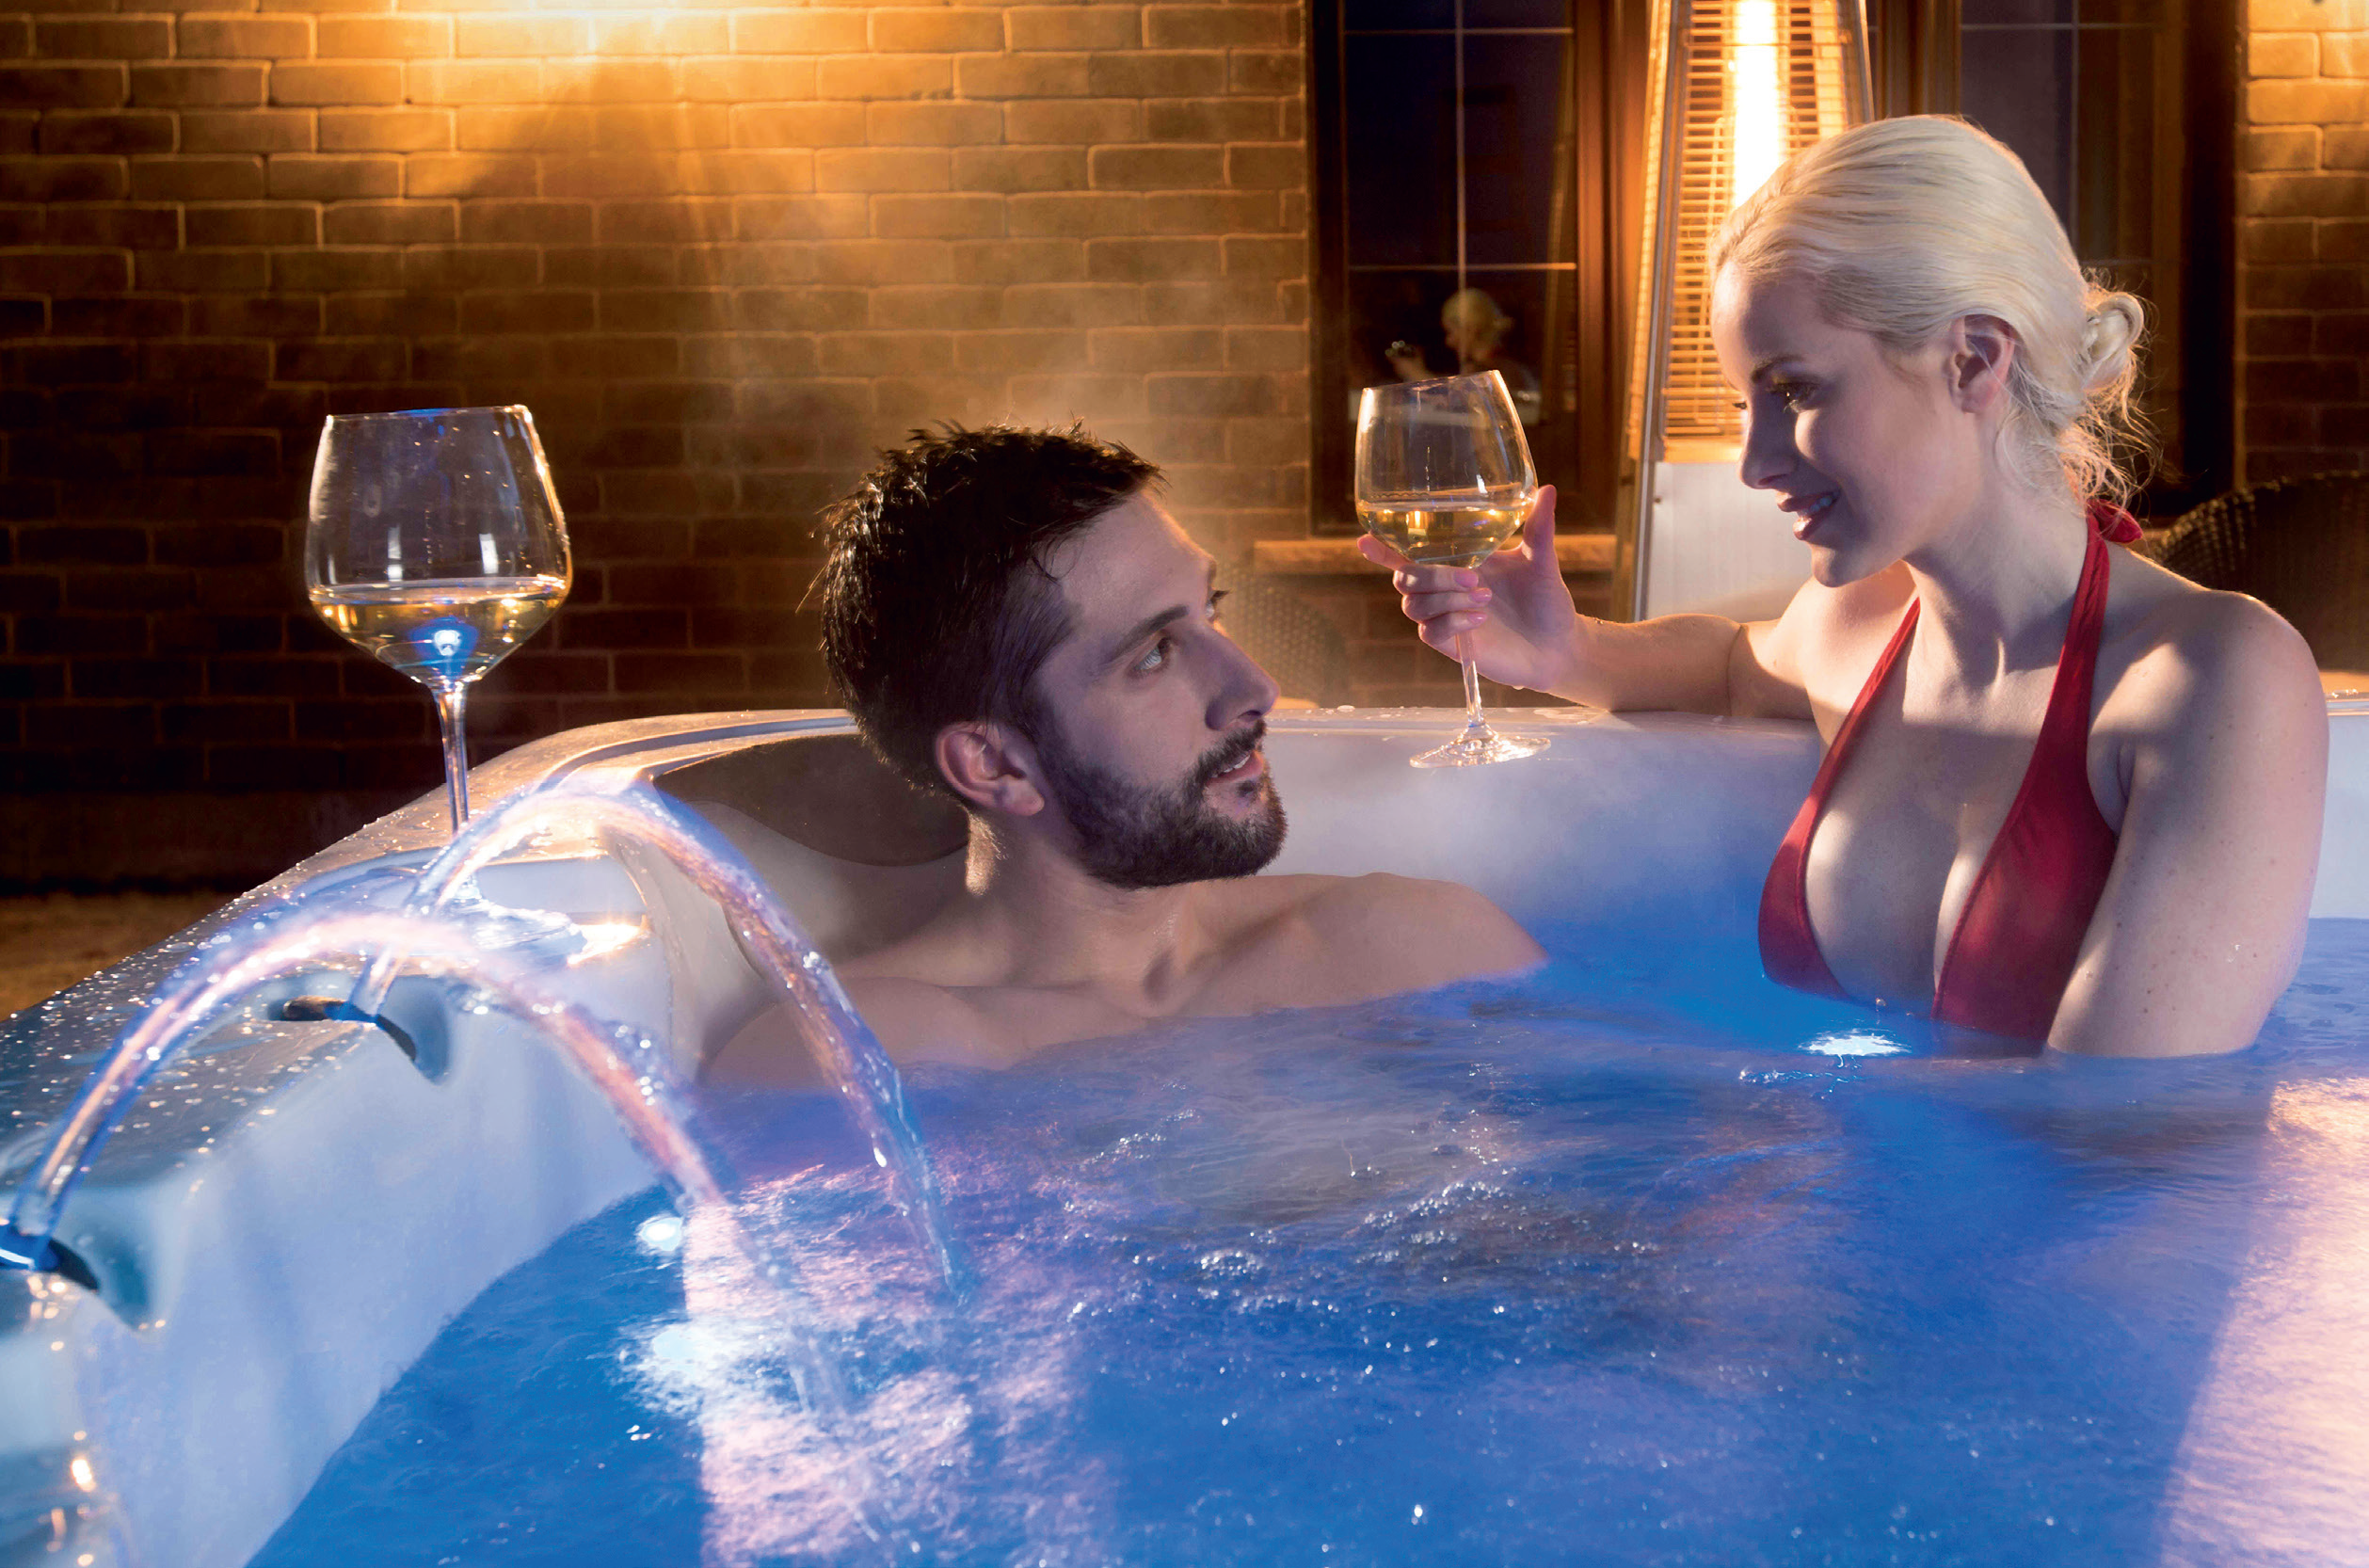 Most hot tub purchases are driven by social and relaxation needs but the health and wellness market is growing. Pic: Vita Spa.